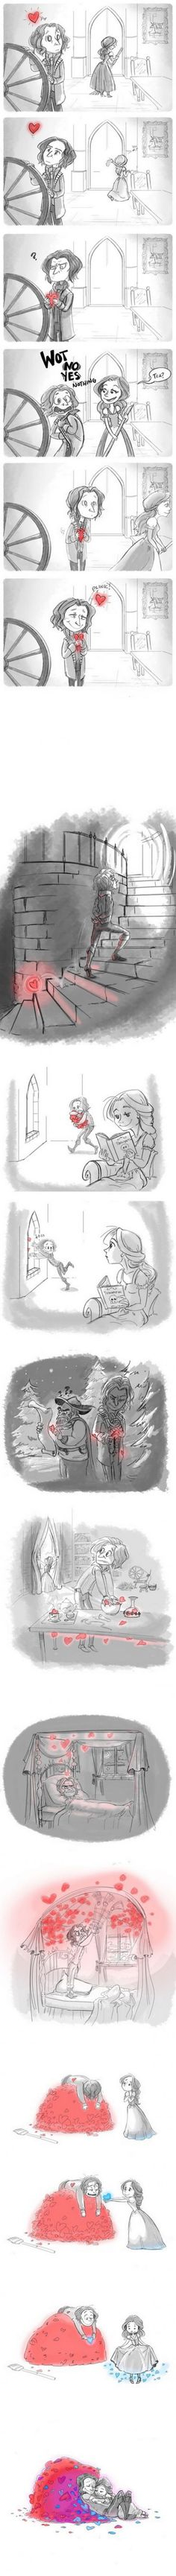 Once Upon A Time - AWW - - Rumplestiltskin falls in love This is a lovely comic about falling in love it made my heart hurt with how cute it is! -Laurel The post Once Upon A Time appeared first on Gag Dad. Rage Comic, My Heart Hurts, Cute Stories, Short Stories, Short Comics, Ouat, Once Upon A Time, Comic Strips, Cute Couples